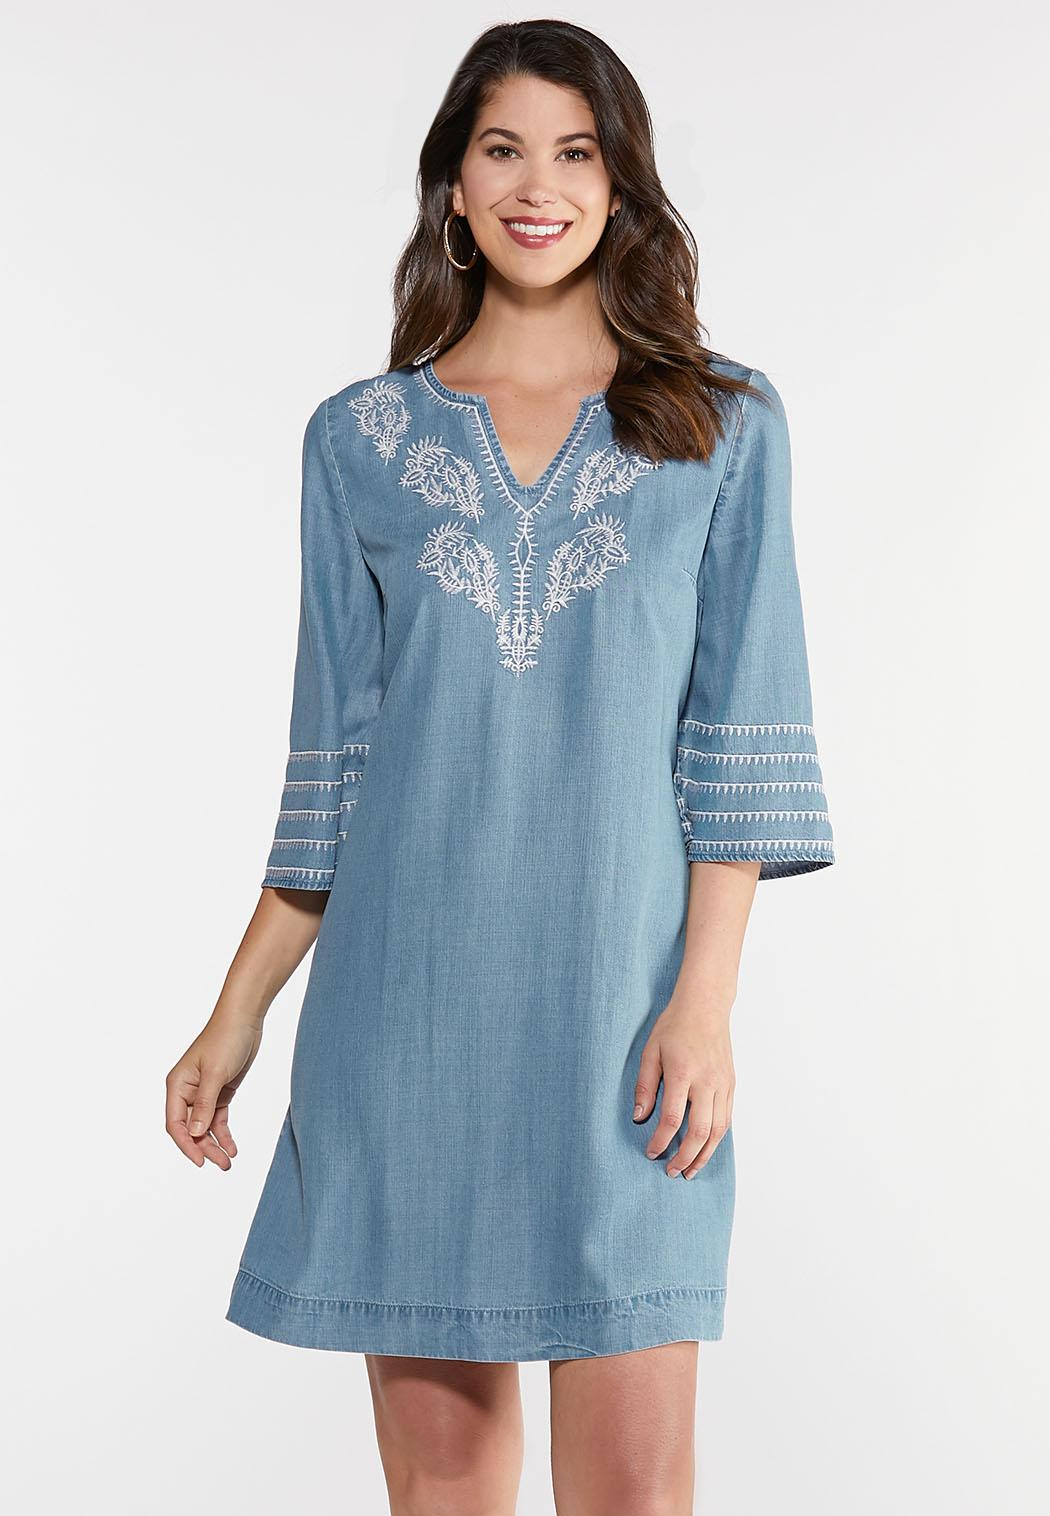 Plus Size Embroidered Chambray Tunic Dresses Cato Fashions